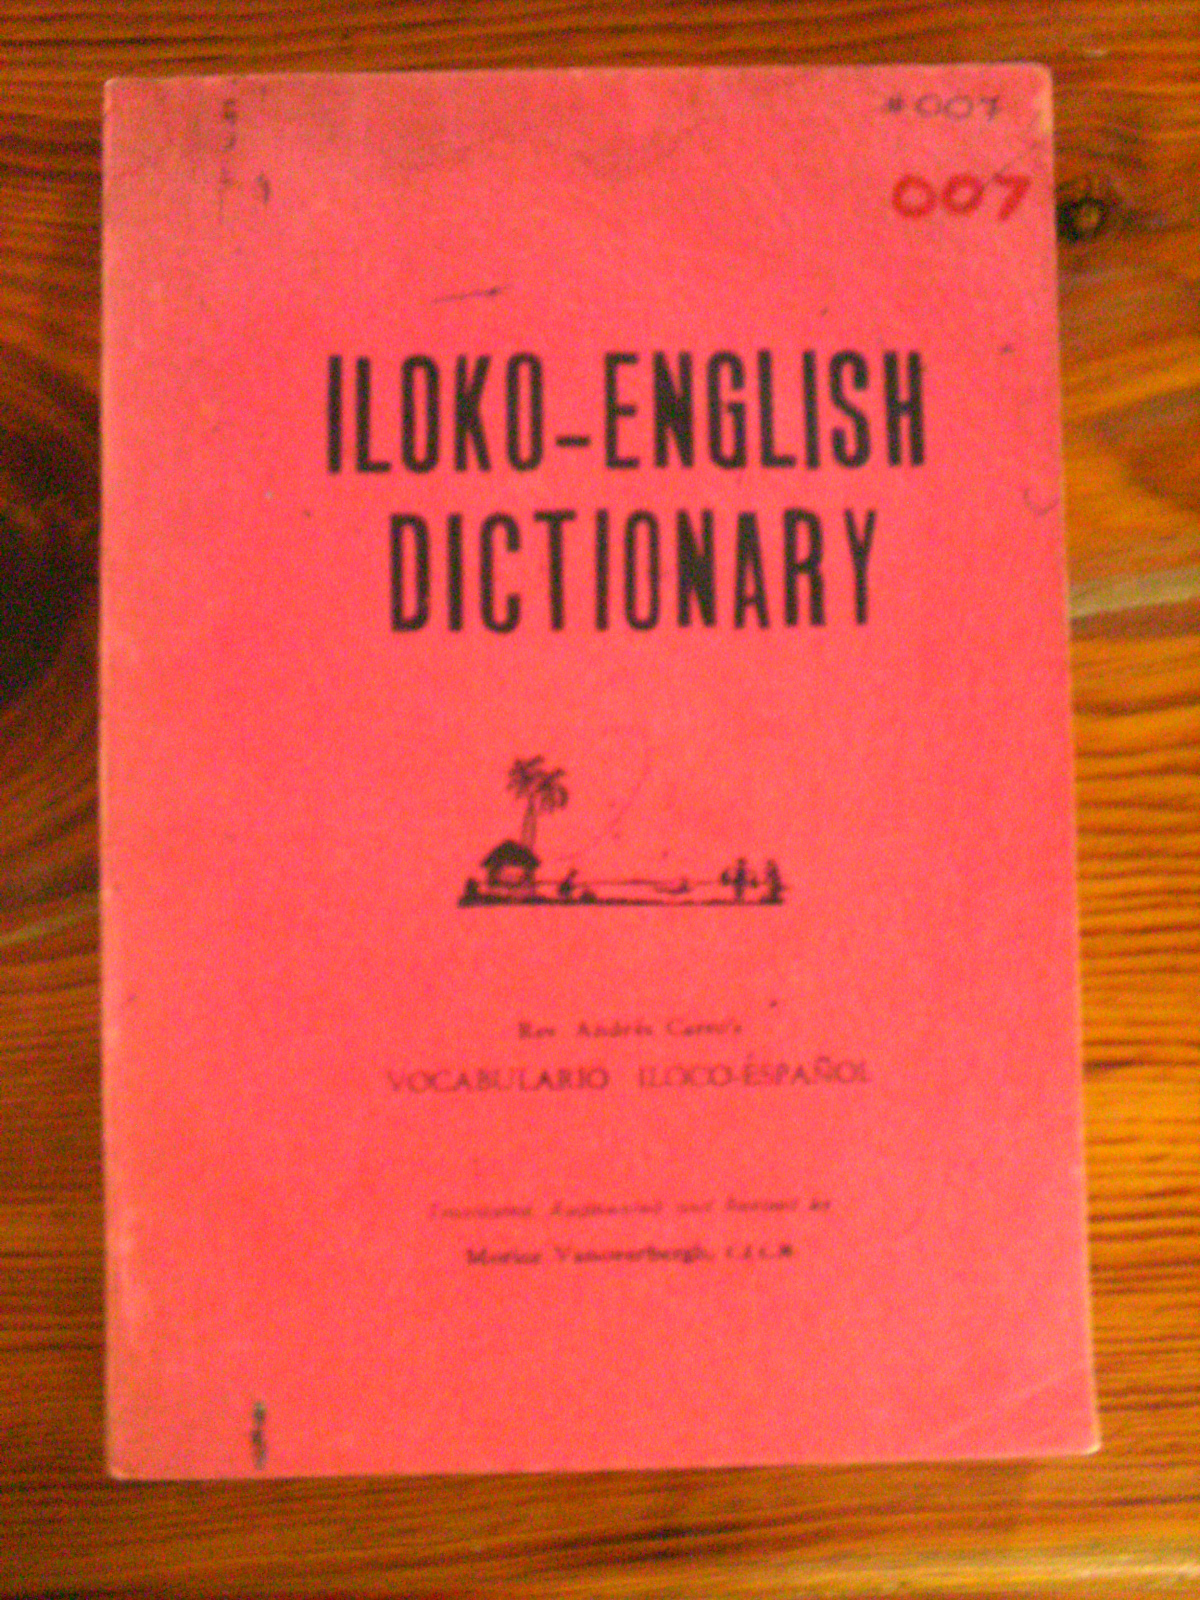 English Ipa Chart: Ilocano language - Wikipedia,Chart